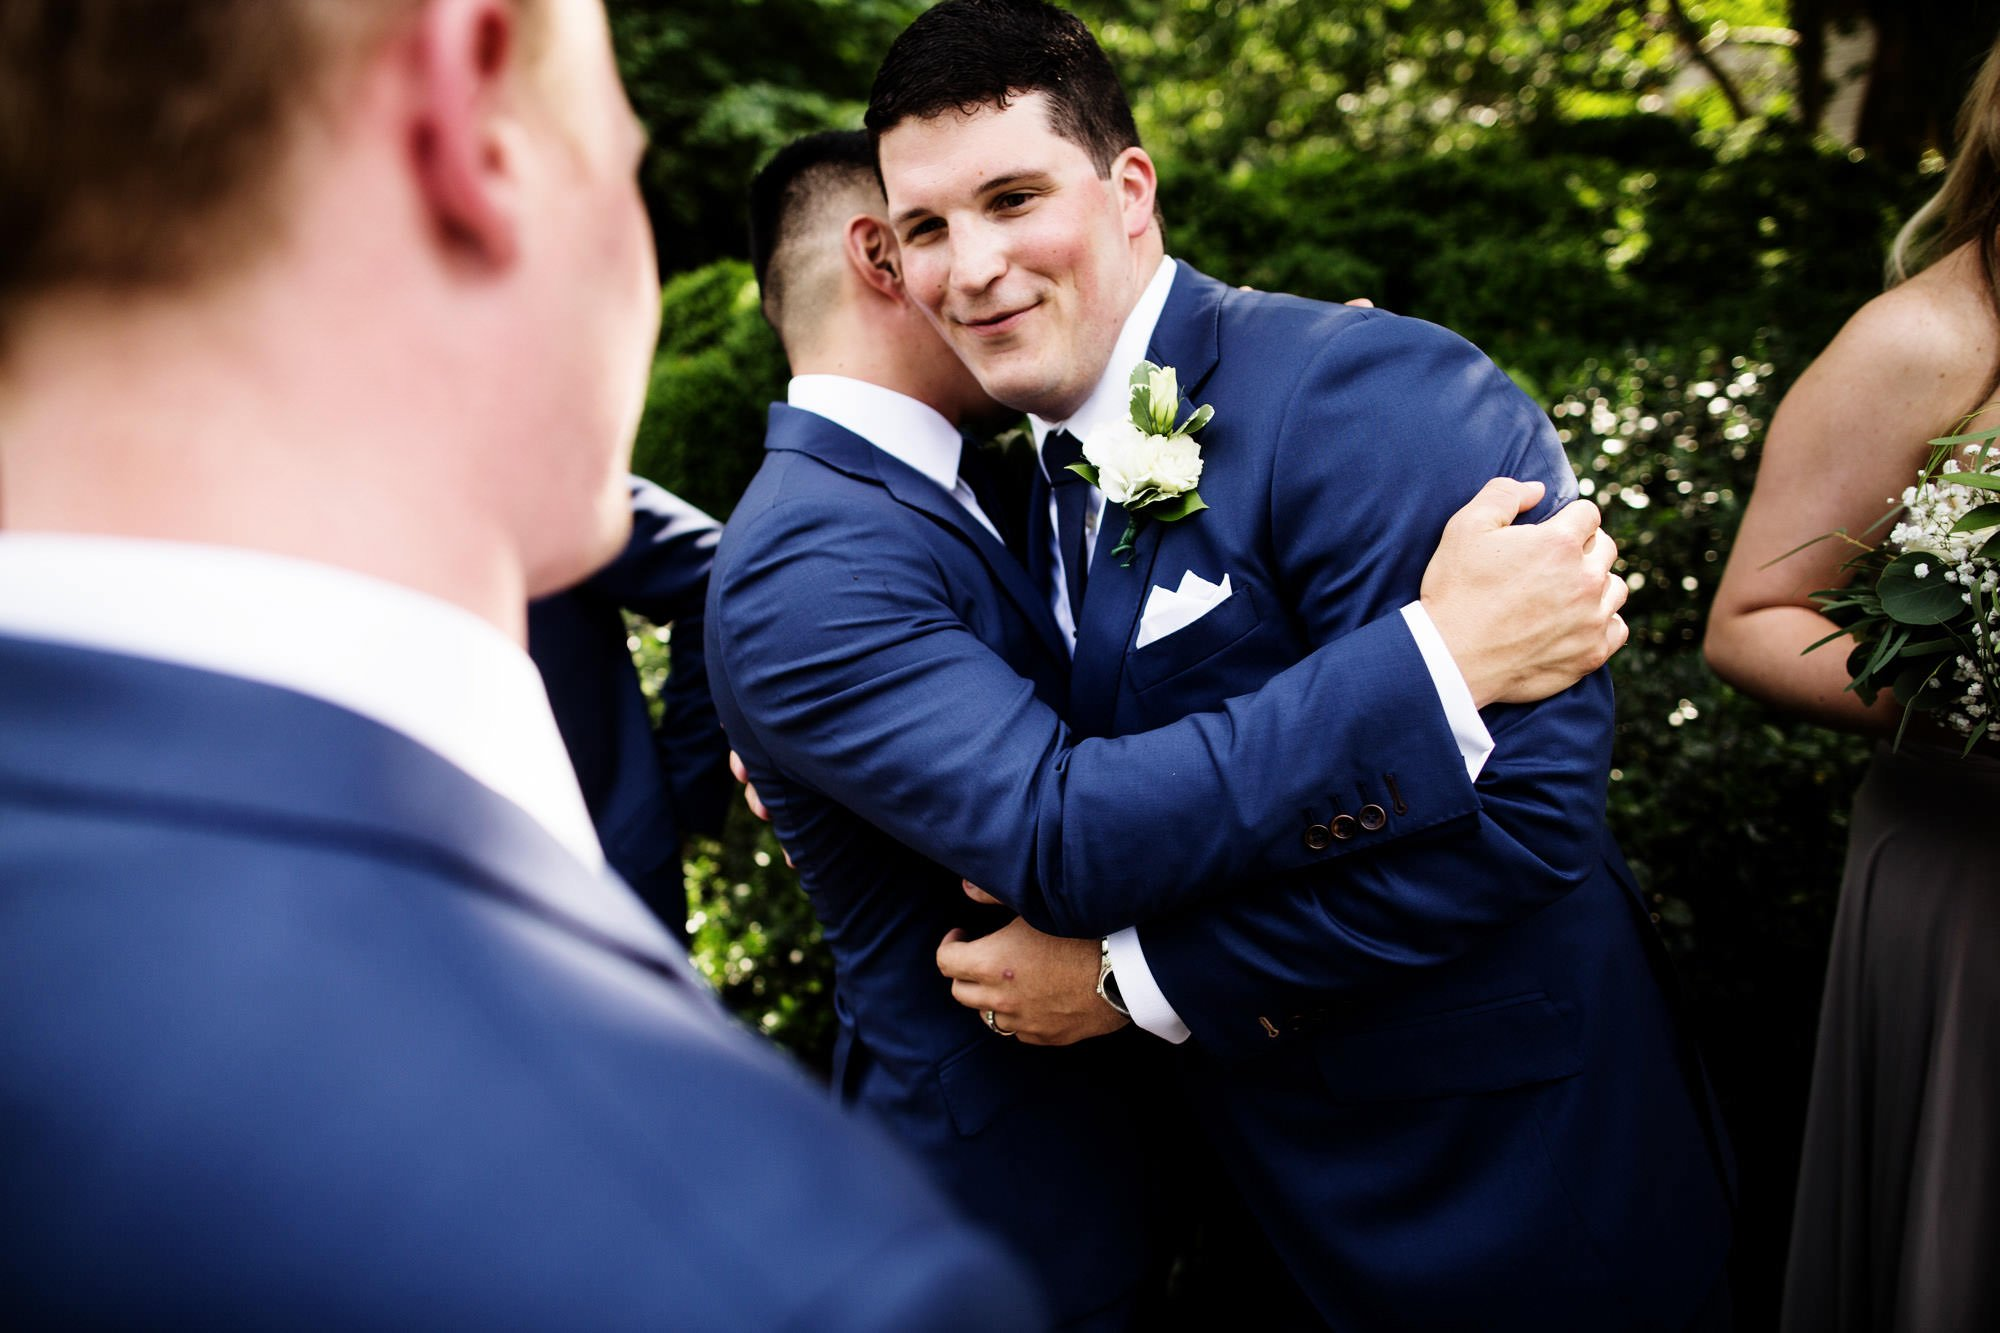 The groom is hugged by friends following the ceremony.